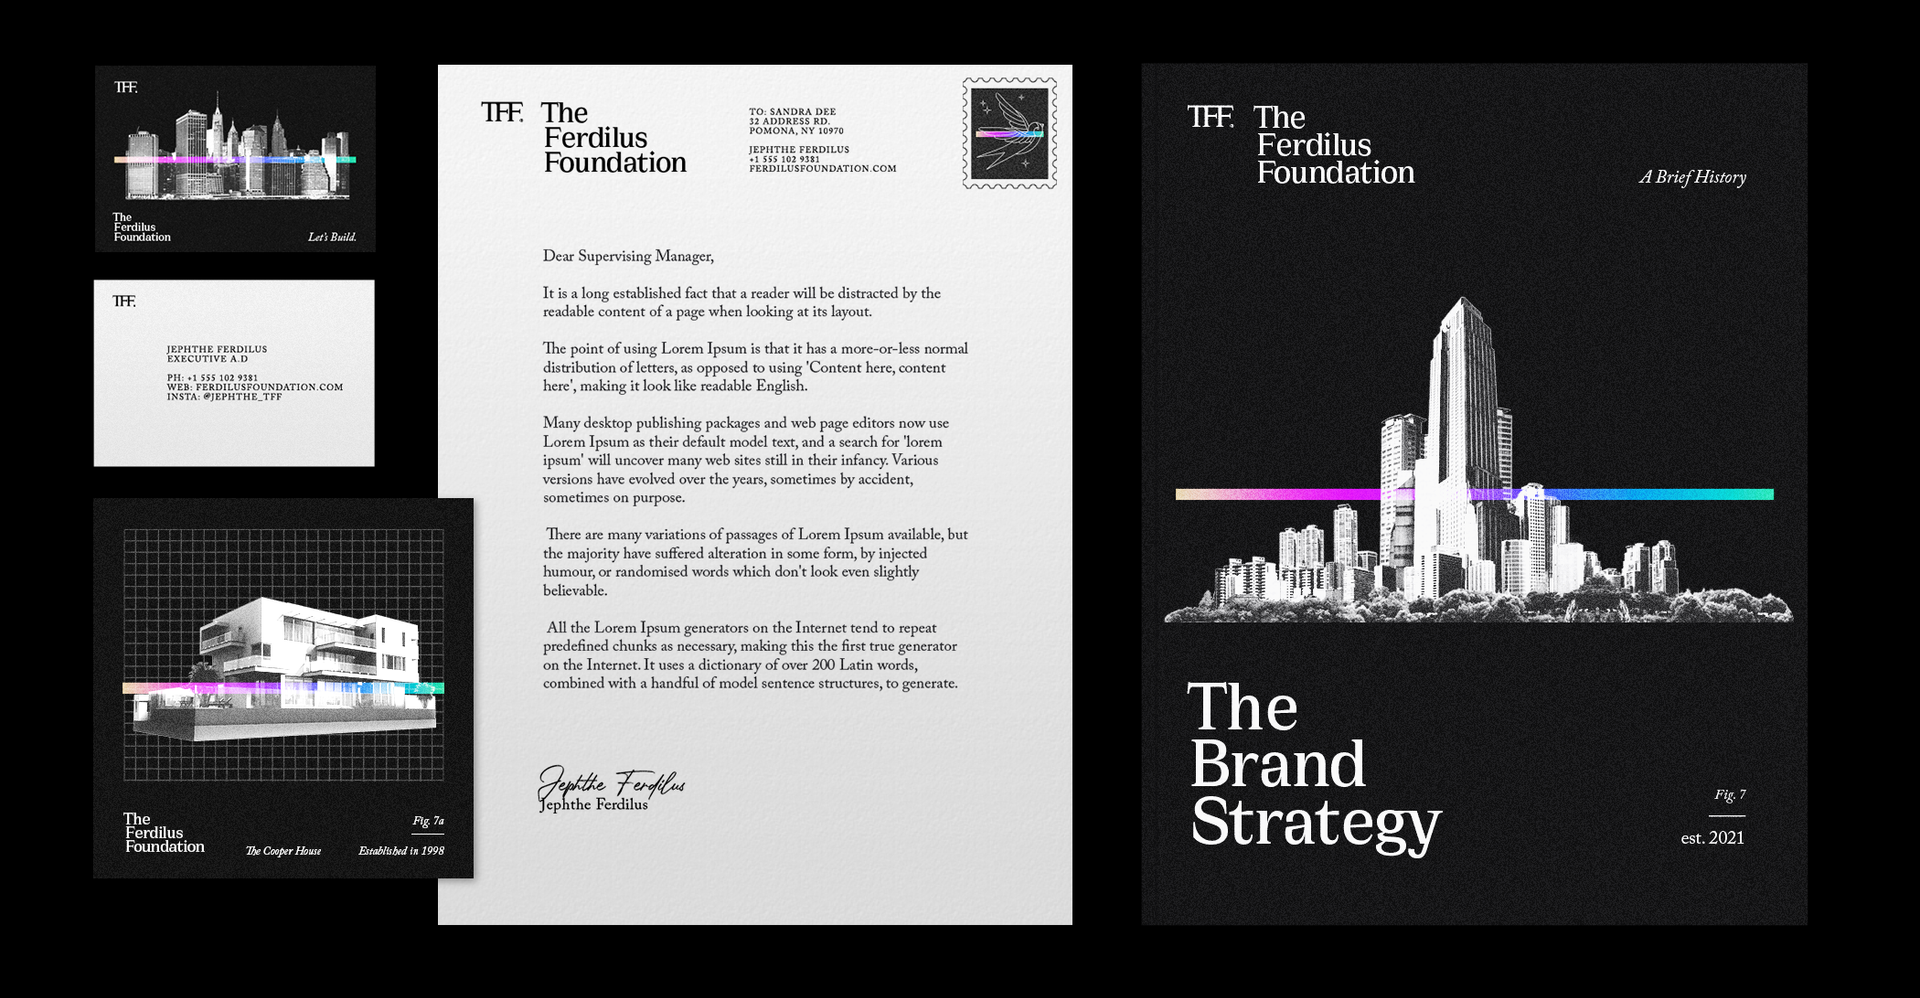 The Ferdilus Foundation Branding3 copy.p